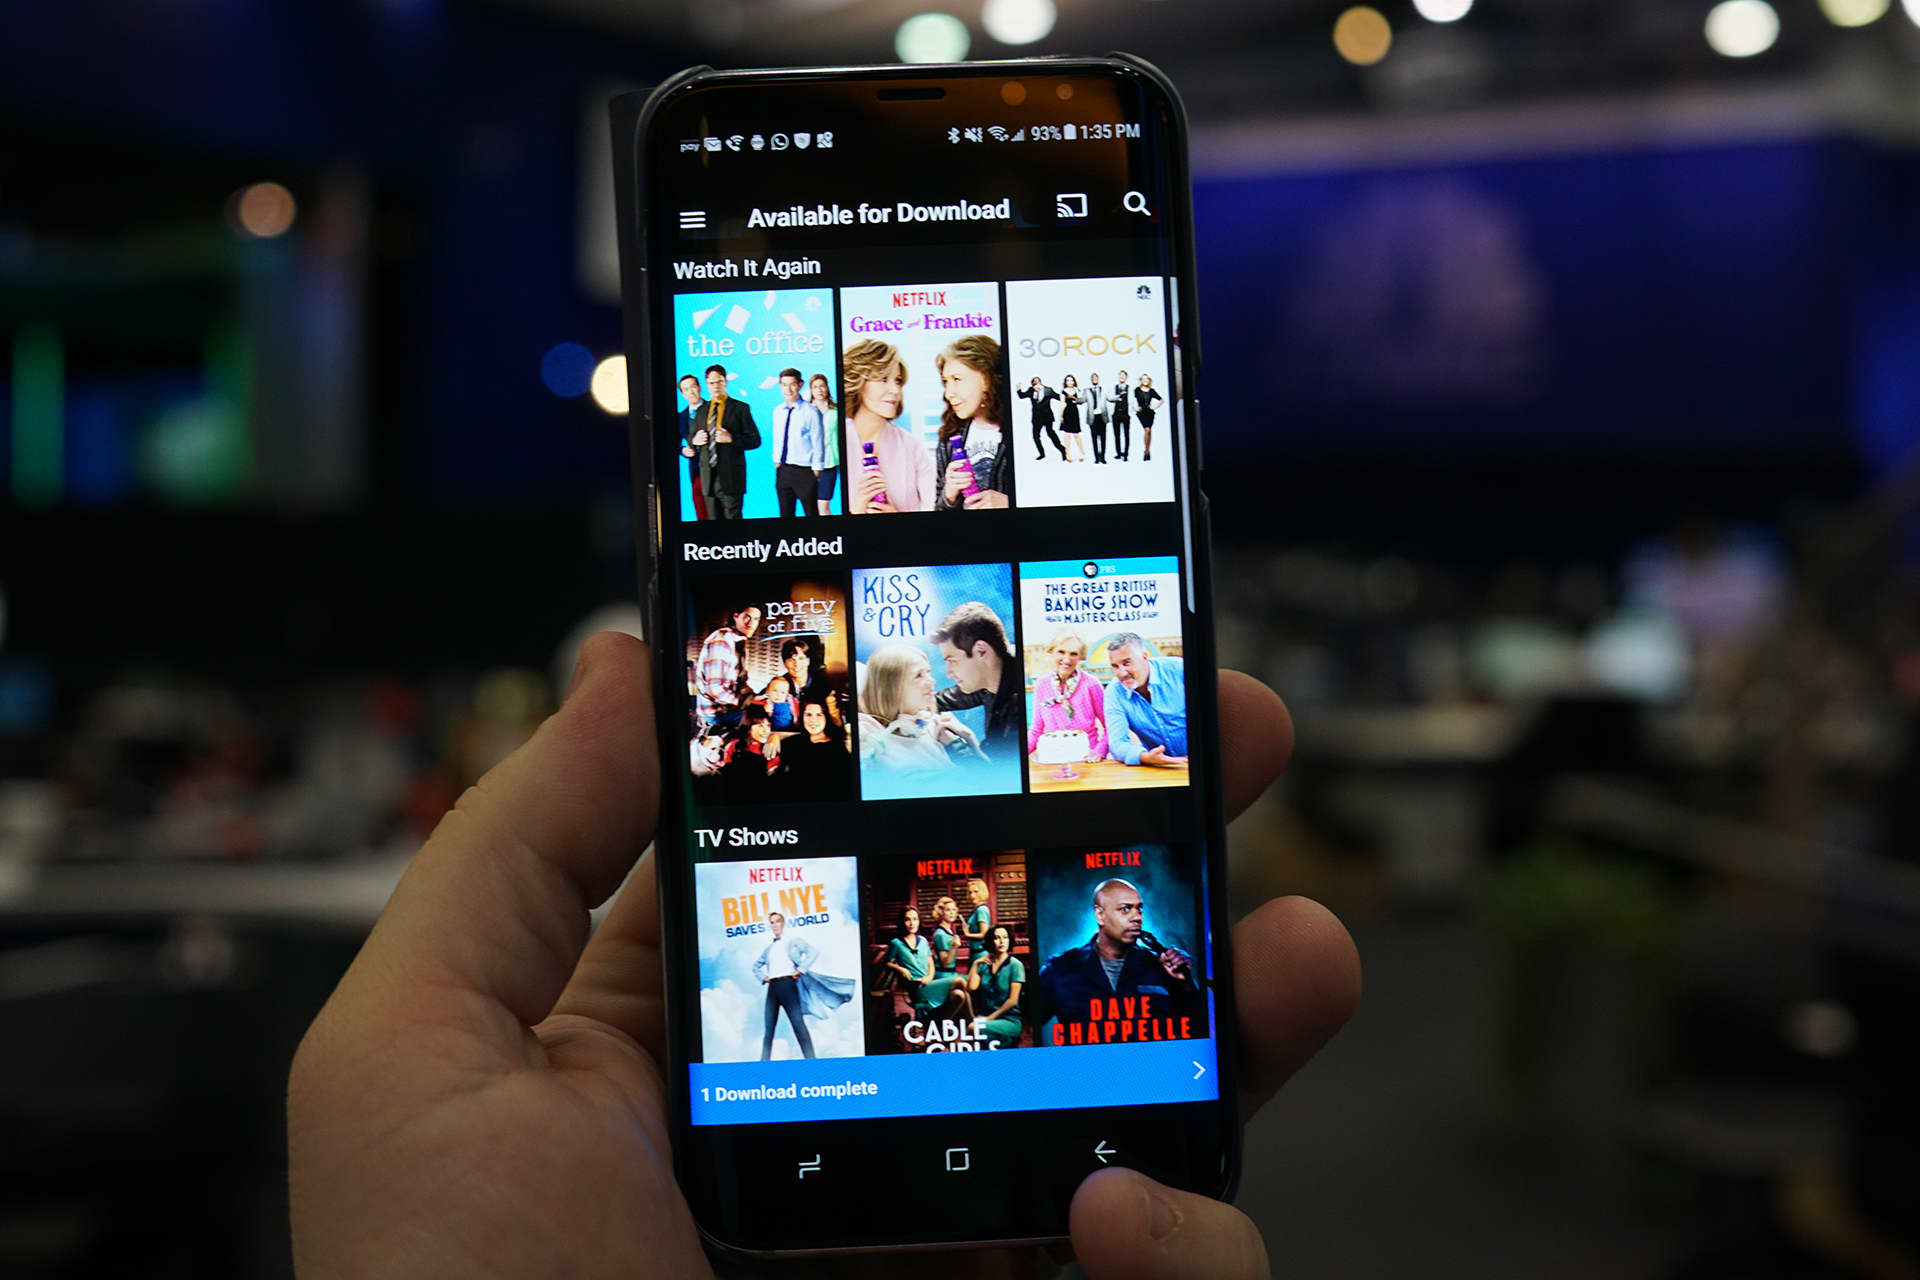 download movie to iphone to watch on plane